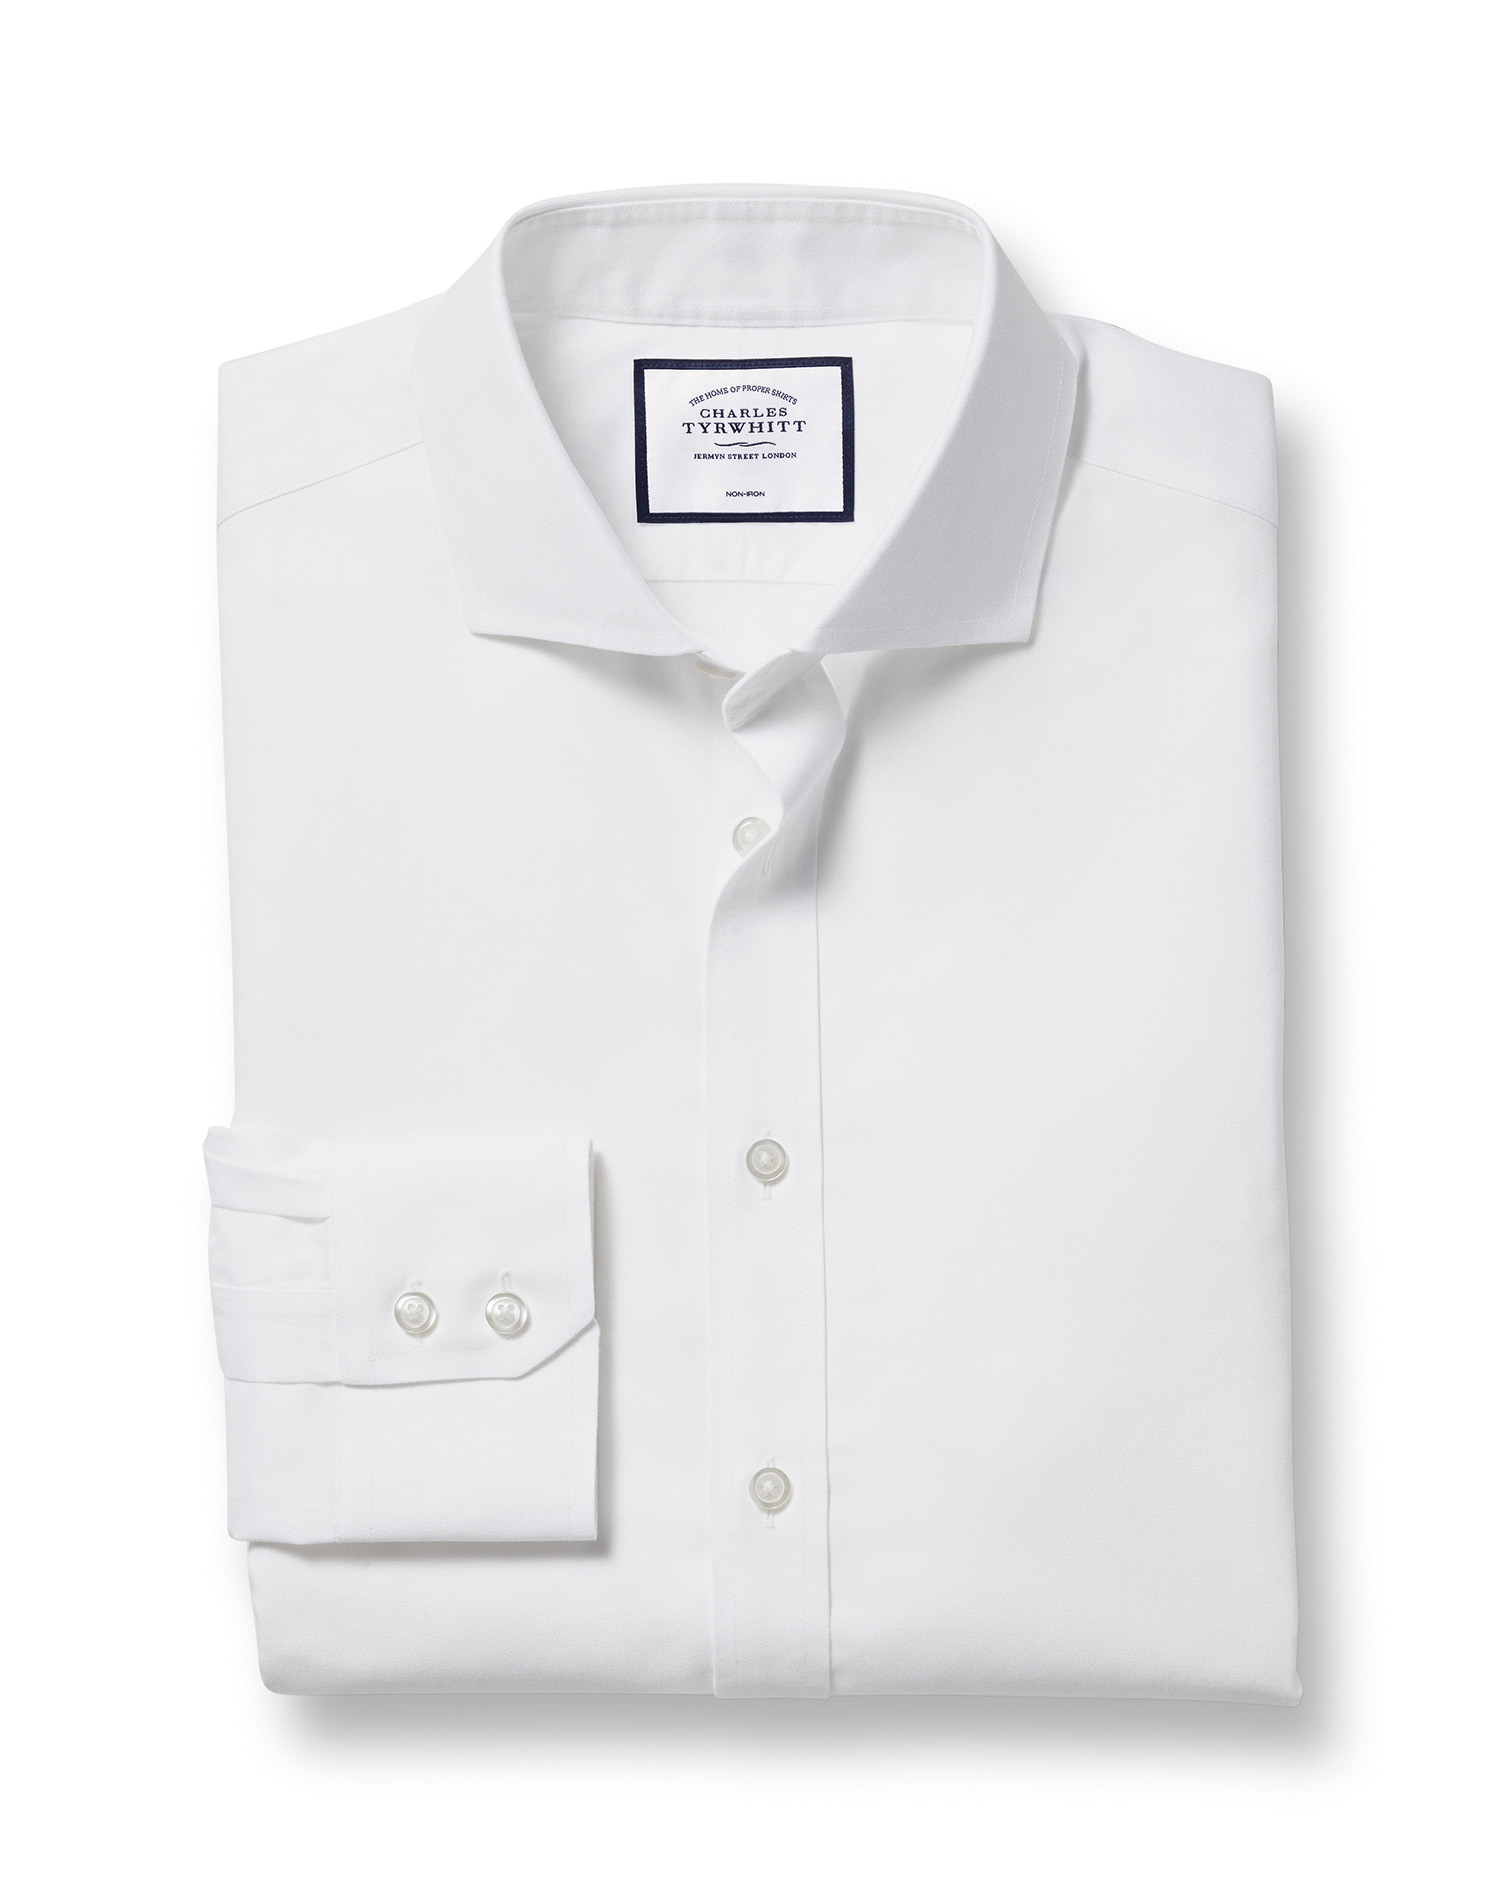 Extra Slim Fit Extreme Cutaway Non-Iron Twill White Cotton Formal Shirt Single Cuff Size 17.5/36 by